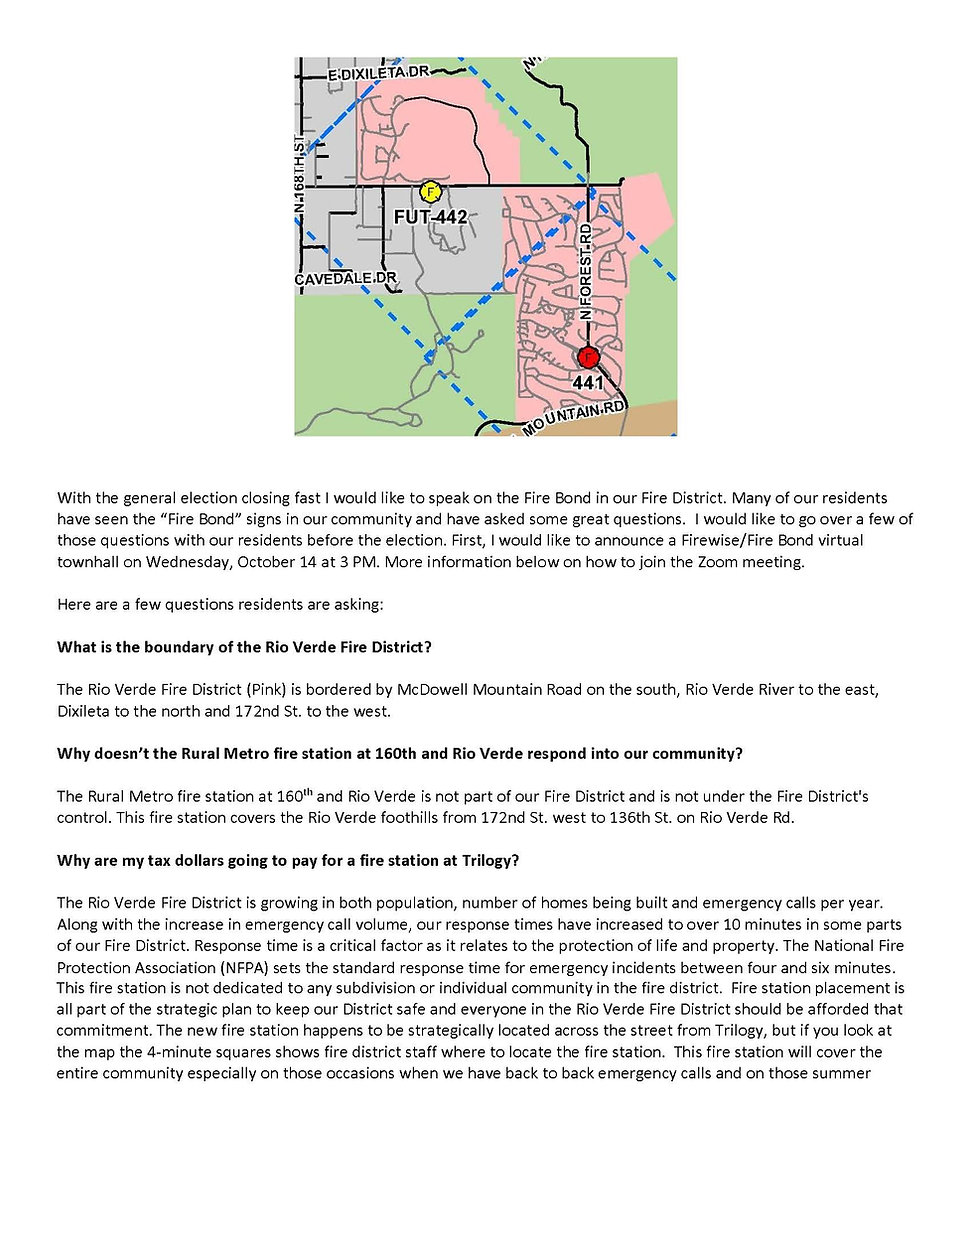 Bond Questions as image_Page_1a_Page_1.j